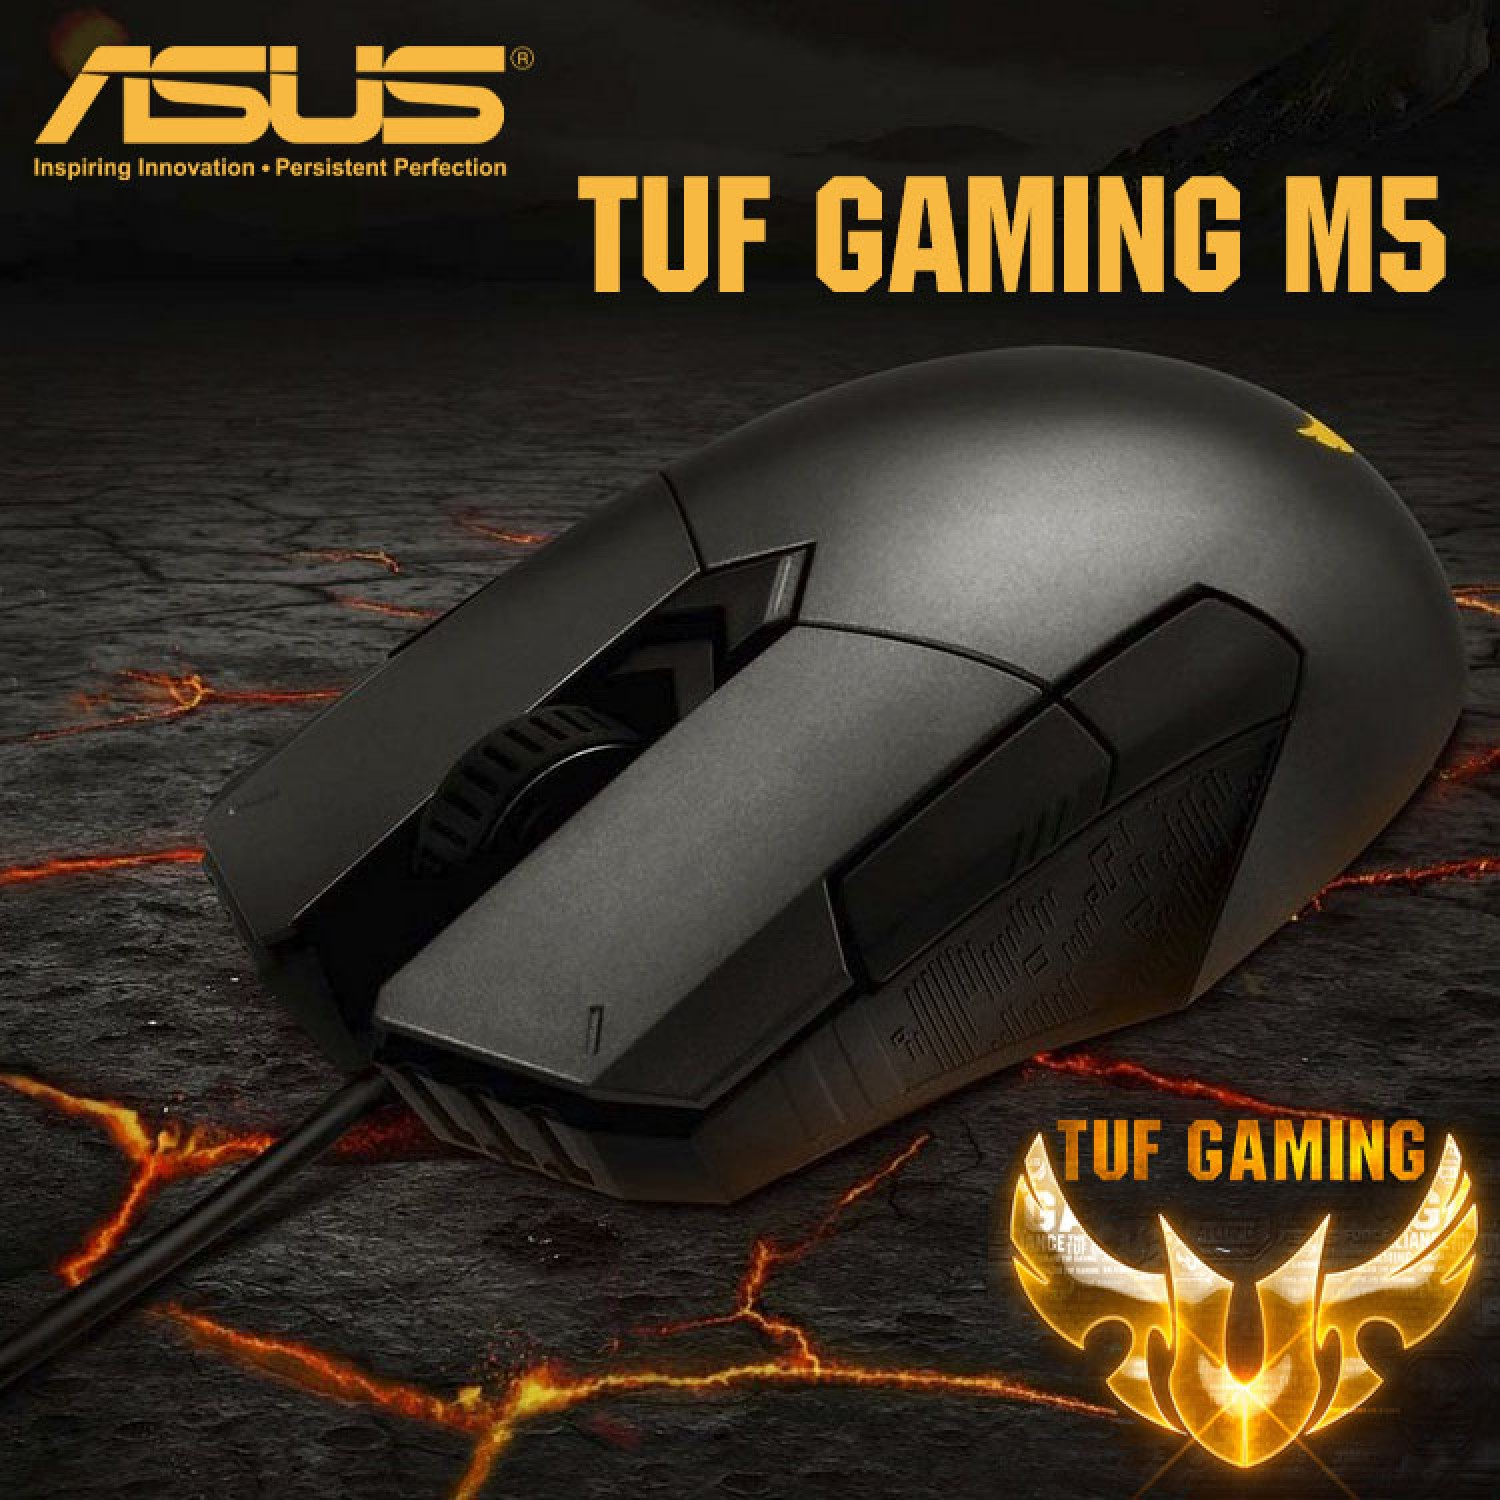 ASUS TUF Gaming M5 ambidextrous ergonomic RGB gaming mouse with gaming-grade optical sensor, durable coating, heavy-duty Omron switches and Aura Sync lighting   Godukkan.com